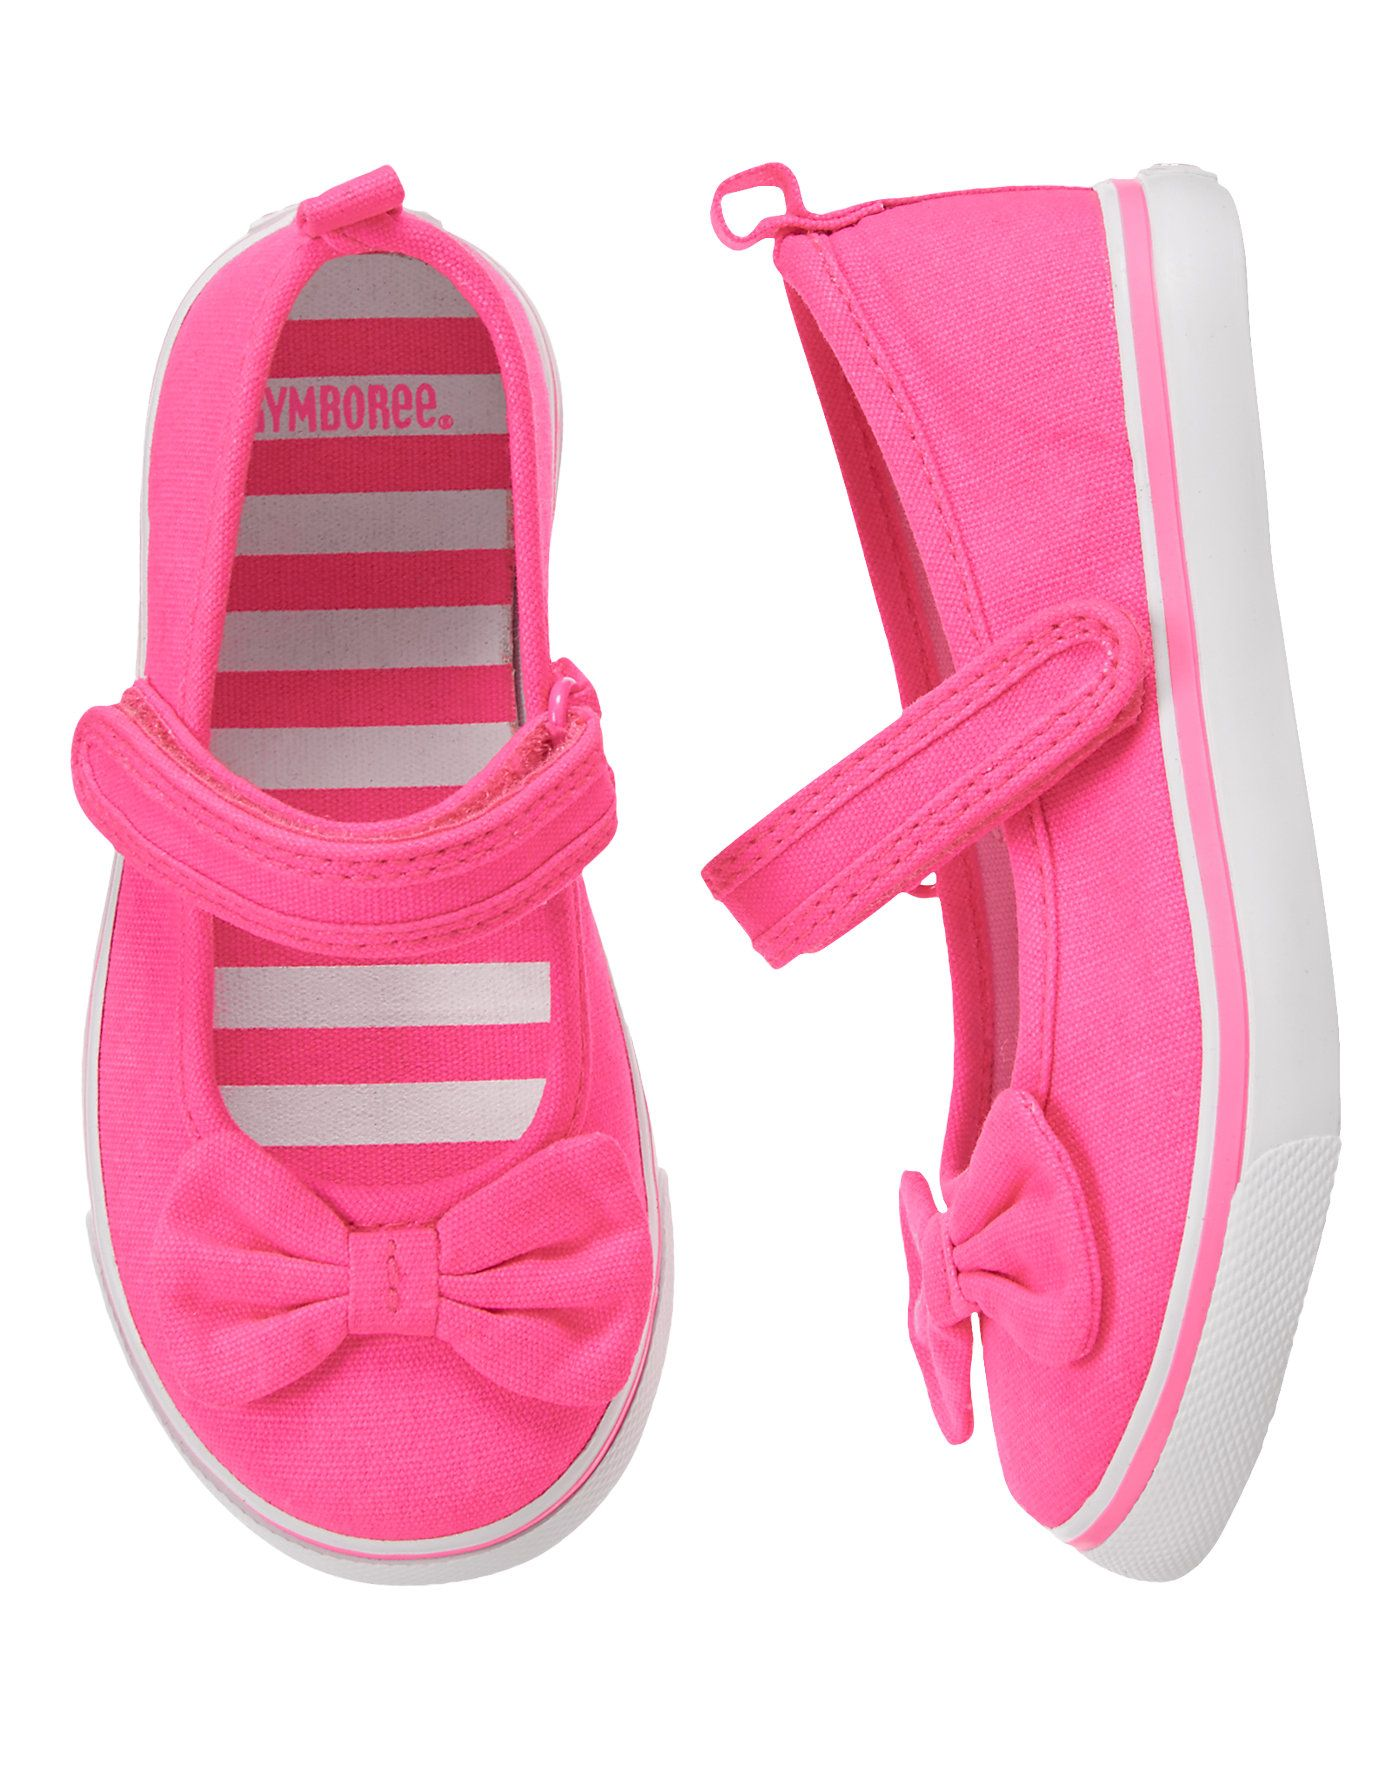 e18cc3d584 Have it - Neon Mary Jane Sneakers at Gymboree sale